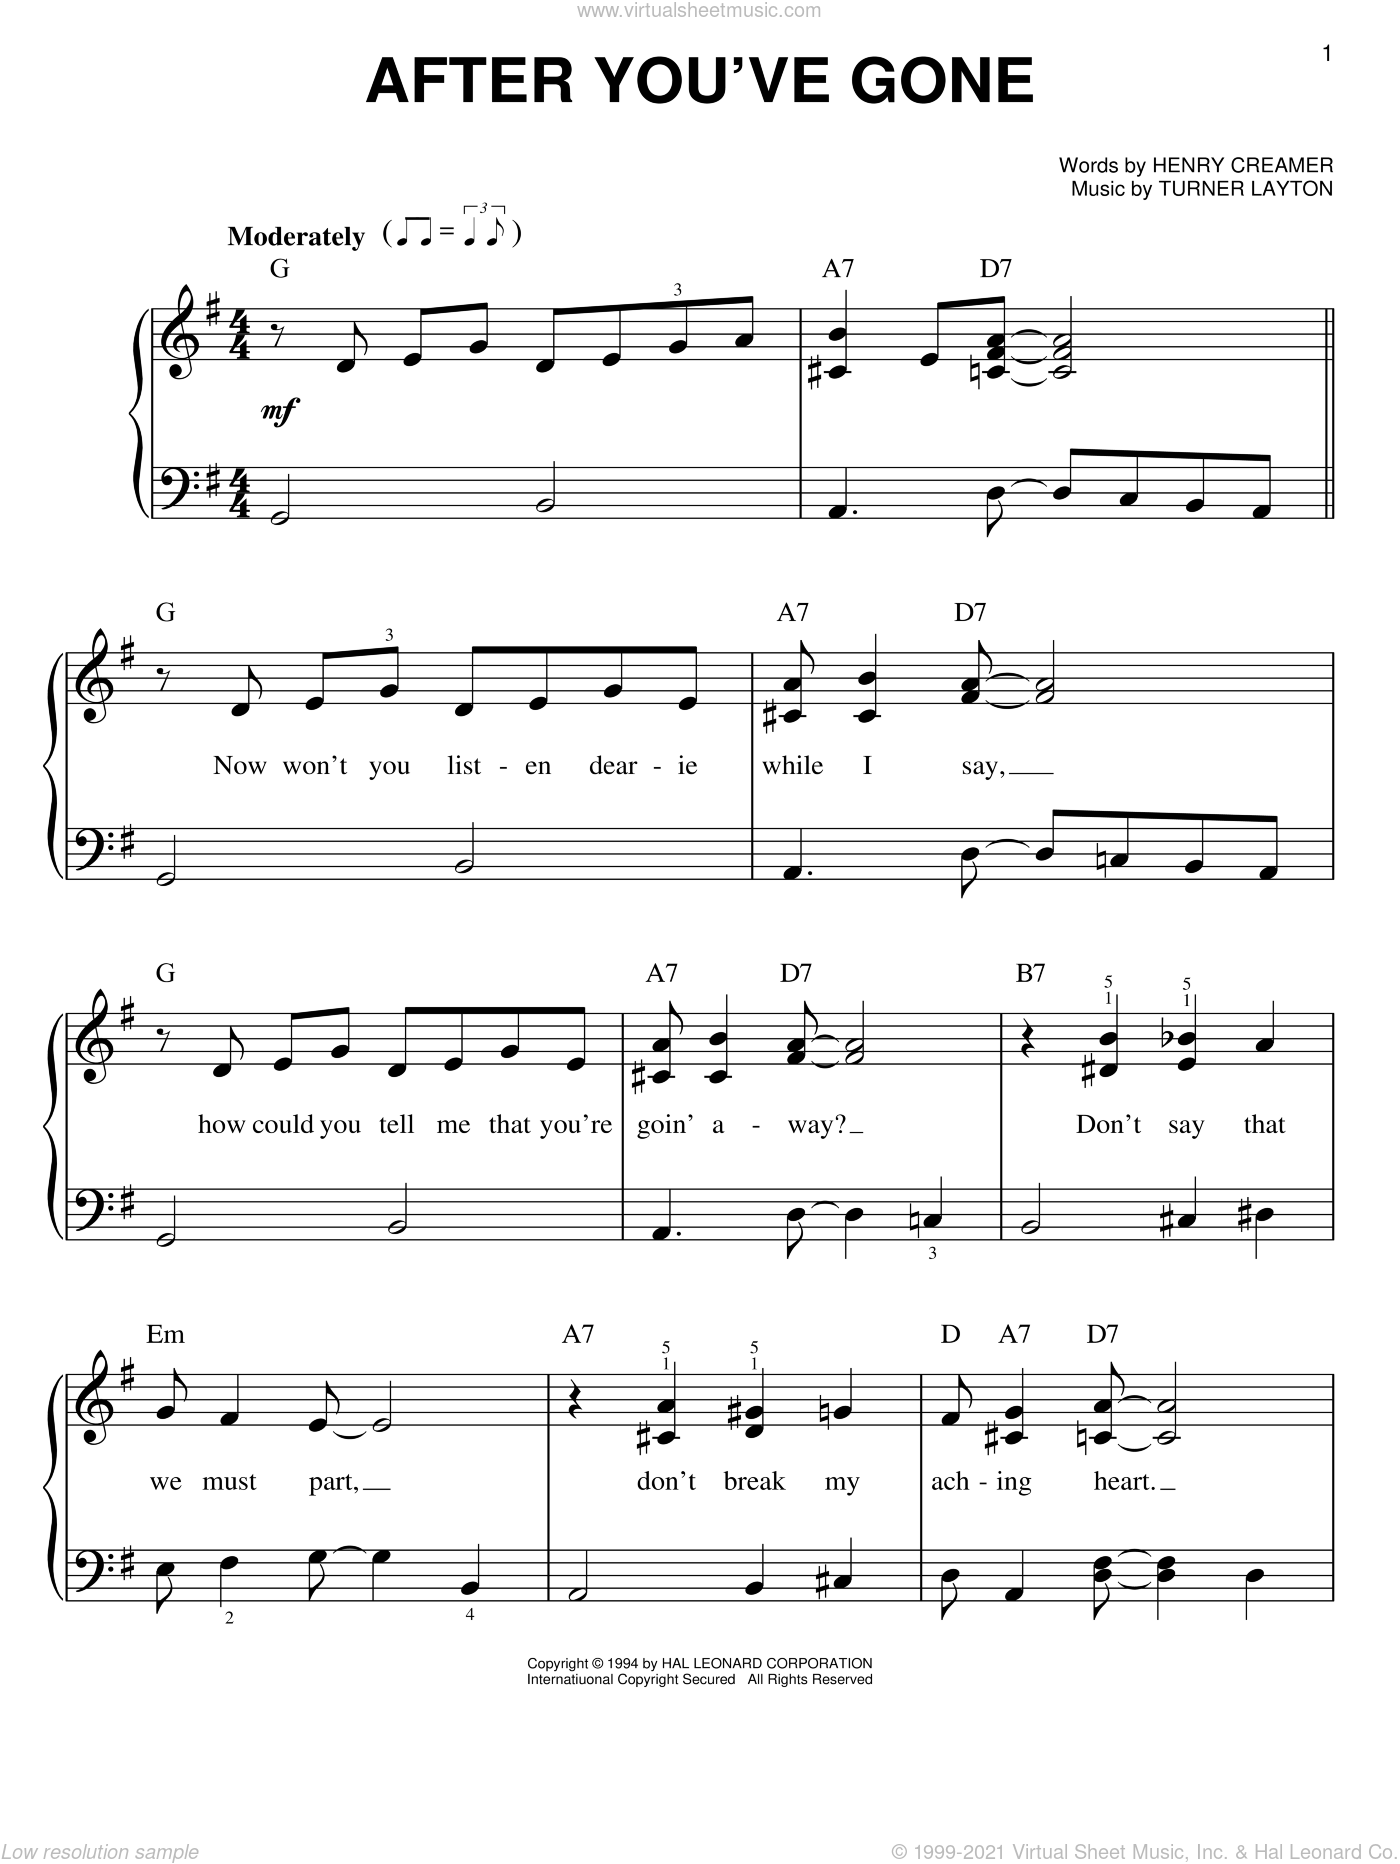 After You've Gone sheet music for piano solo by Sophie Tucker, Henry Creamer and Turner Layton, easy